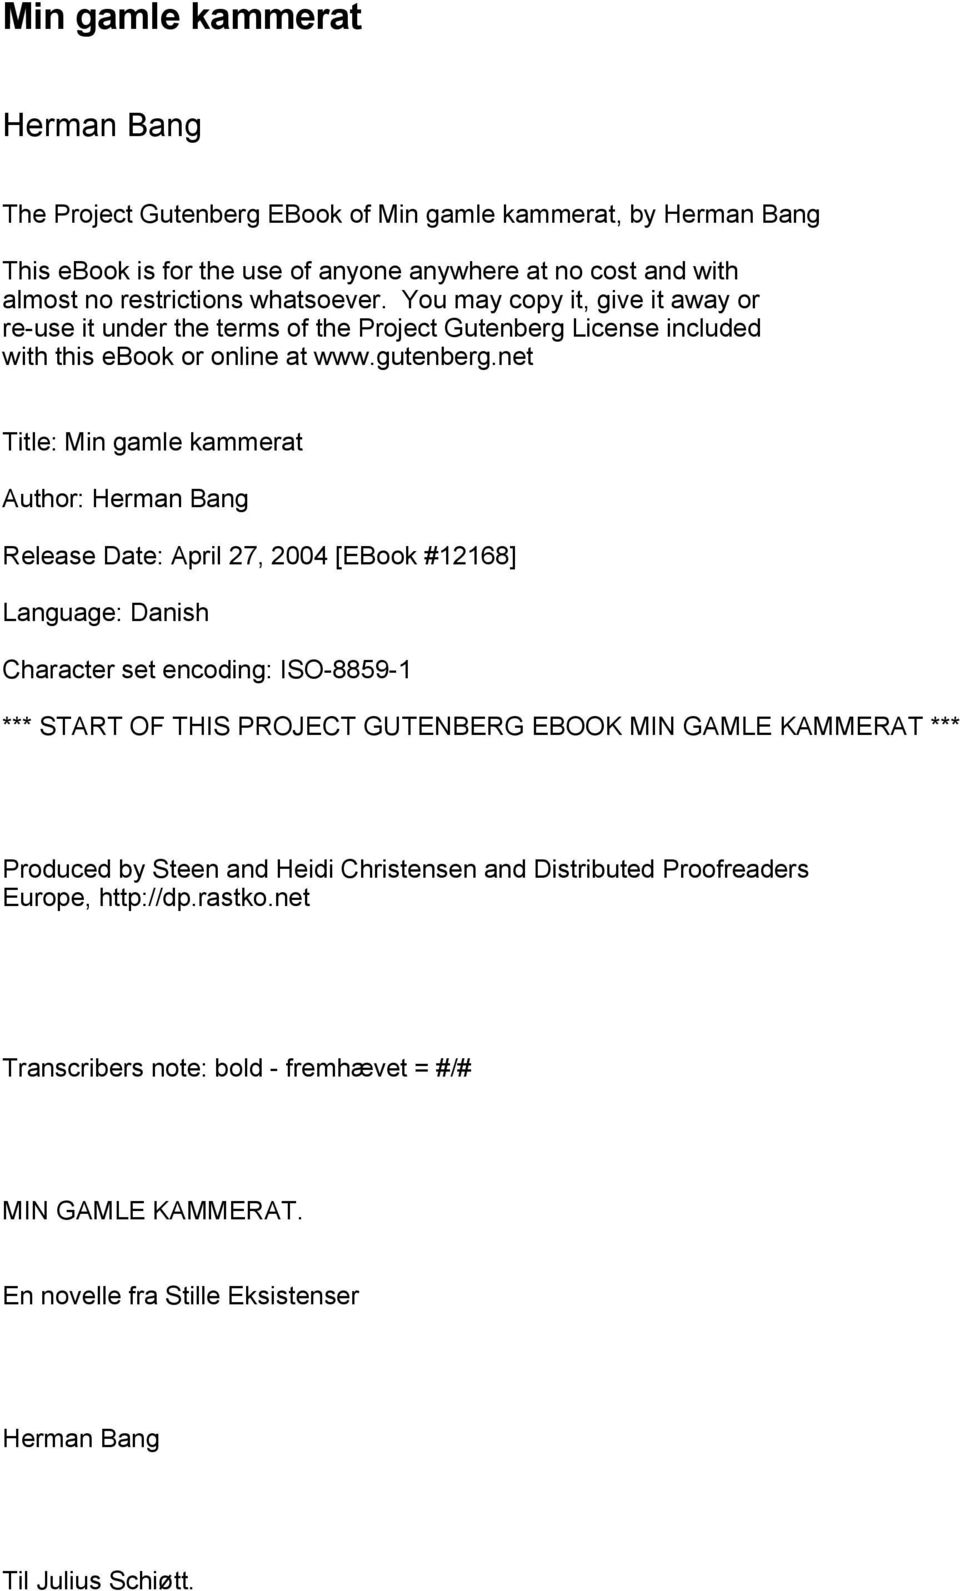 net Title: Min gamle kammerat Author: Herman Bang Release Date: April 27, 2004 [EBook #12168] Language: Danish Character set encoding: ISO-8859-1 *** START OF THIS PROJECT GUTENBERG EBOOK MIN